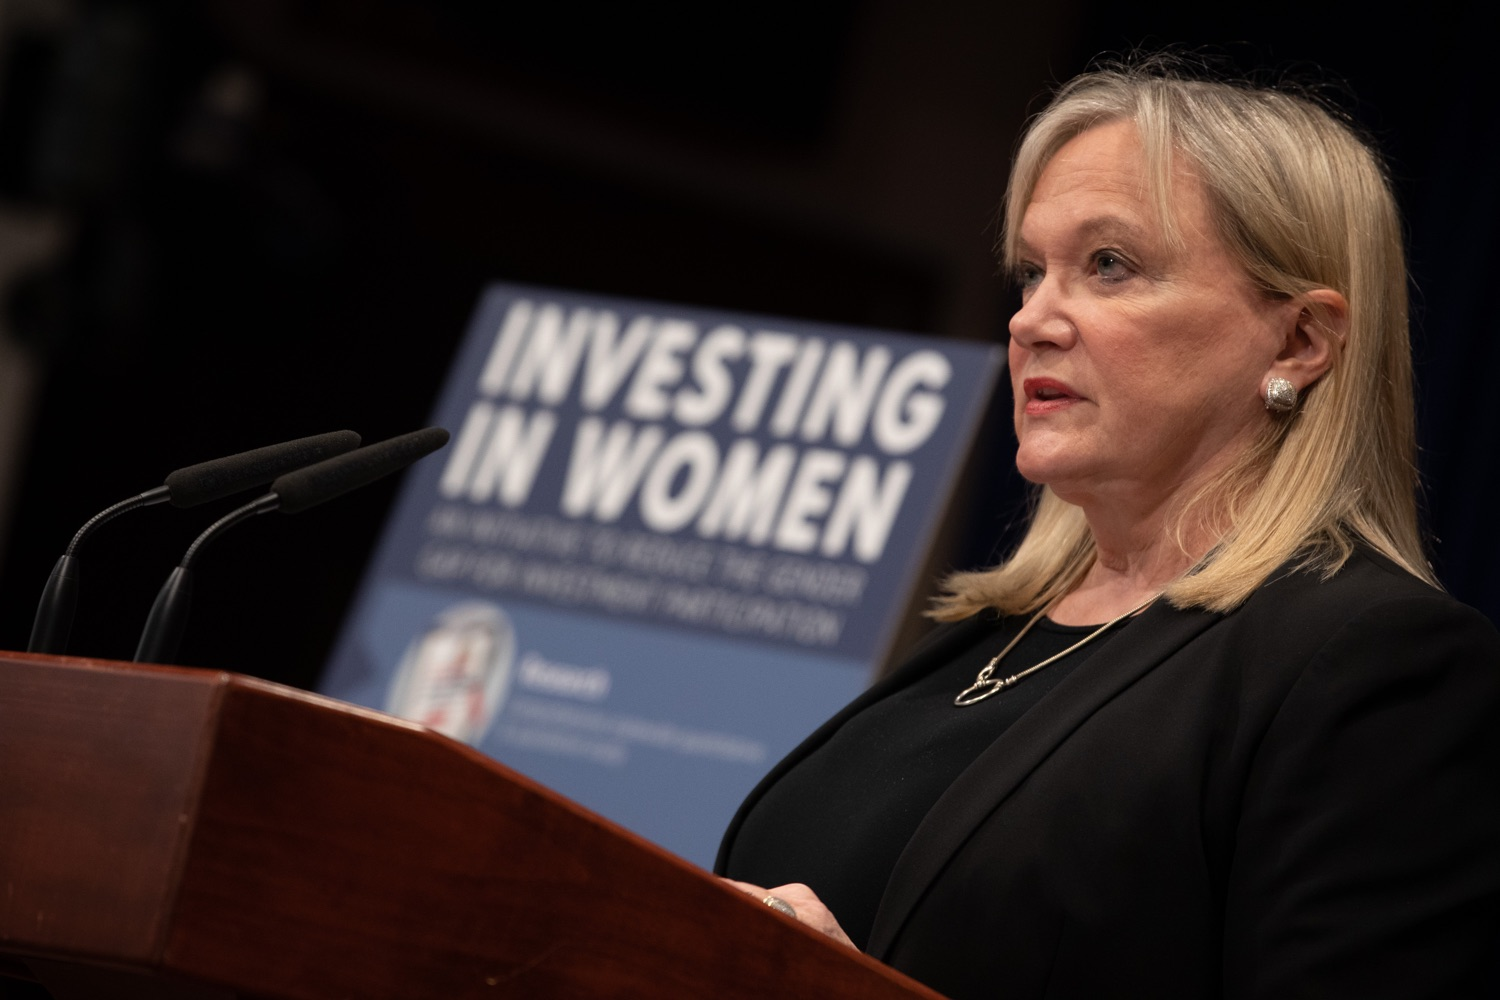 "<a href=""https://filesource.wostreaming.net/commonwealthofpa/photo/17725_dobs_investingwomen_dz_011.jpg"" target=""_blank"">⇣ Download Photo<br></a>Department of Banking and Securities Secretary Robin L. Wiessmann speaking at the announcement in the Capitol Media Center. Pennsylvania Department of Banking and Securities Secretary Robin L. Wiessmann today announced Investing in Women, an initiative aimed at providing women with important information about banking, credit, saving and investing, while offering practical resources to navigate their finances. The secretary was joined at a Capitol news conference by .Julie Bancroft, Chief Public Affairs Officer of the Pennsylvania Coalition Against Domestic Violence (PCADV).  .Harrisburg, PA - January 15, 2020."